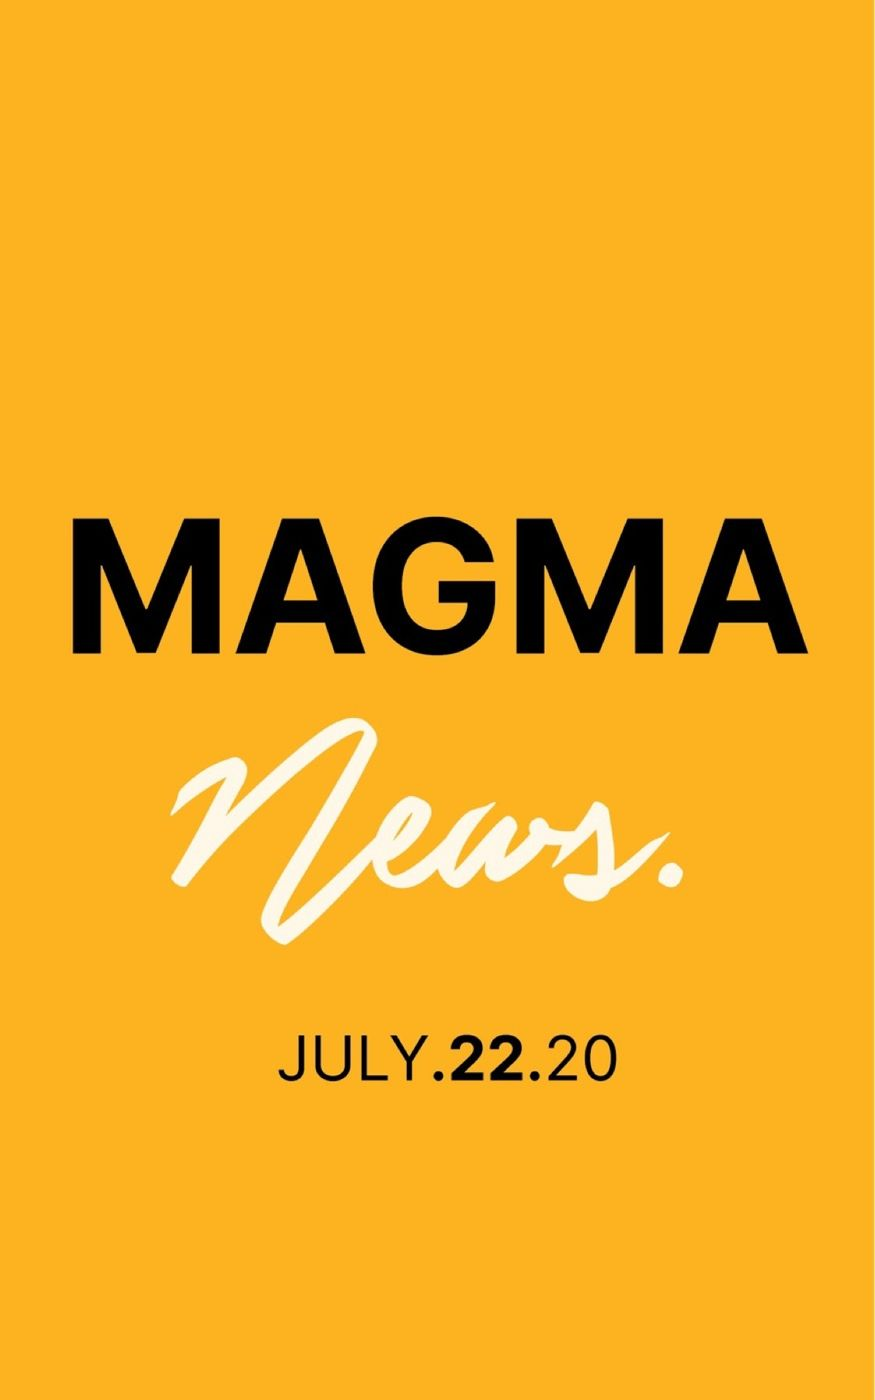 MAGMA NEWS | JULY 22, 2020